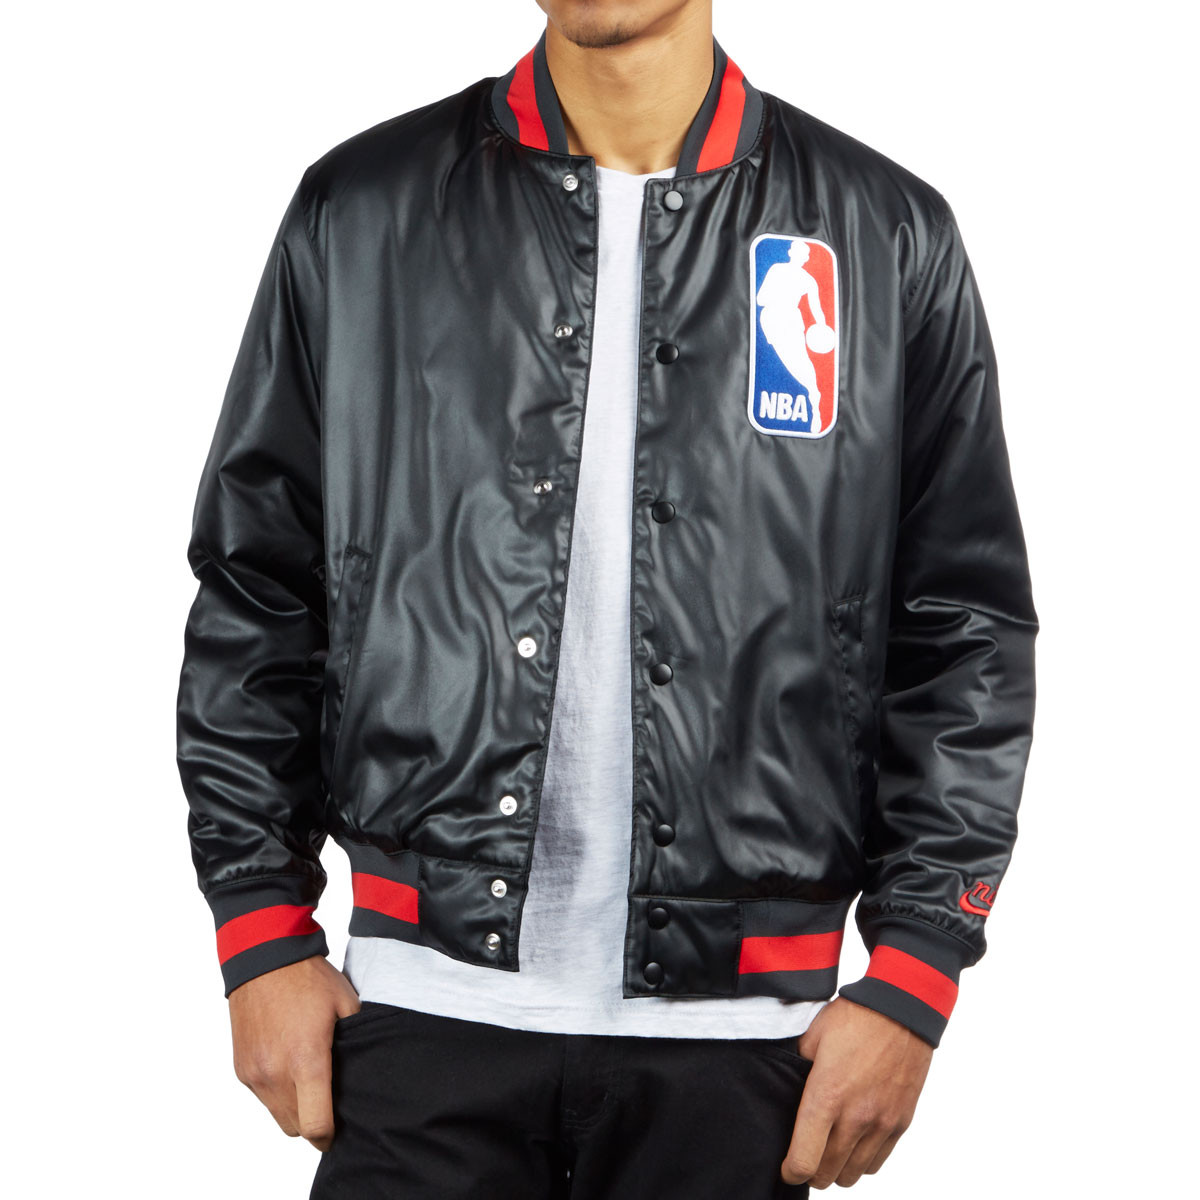 eb1f391bb64 Nike SB X NBA Chicago Bomber Jacket - Black/Black/University Red